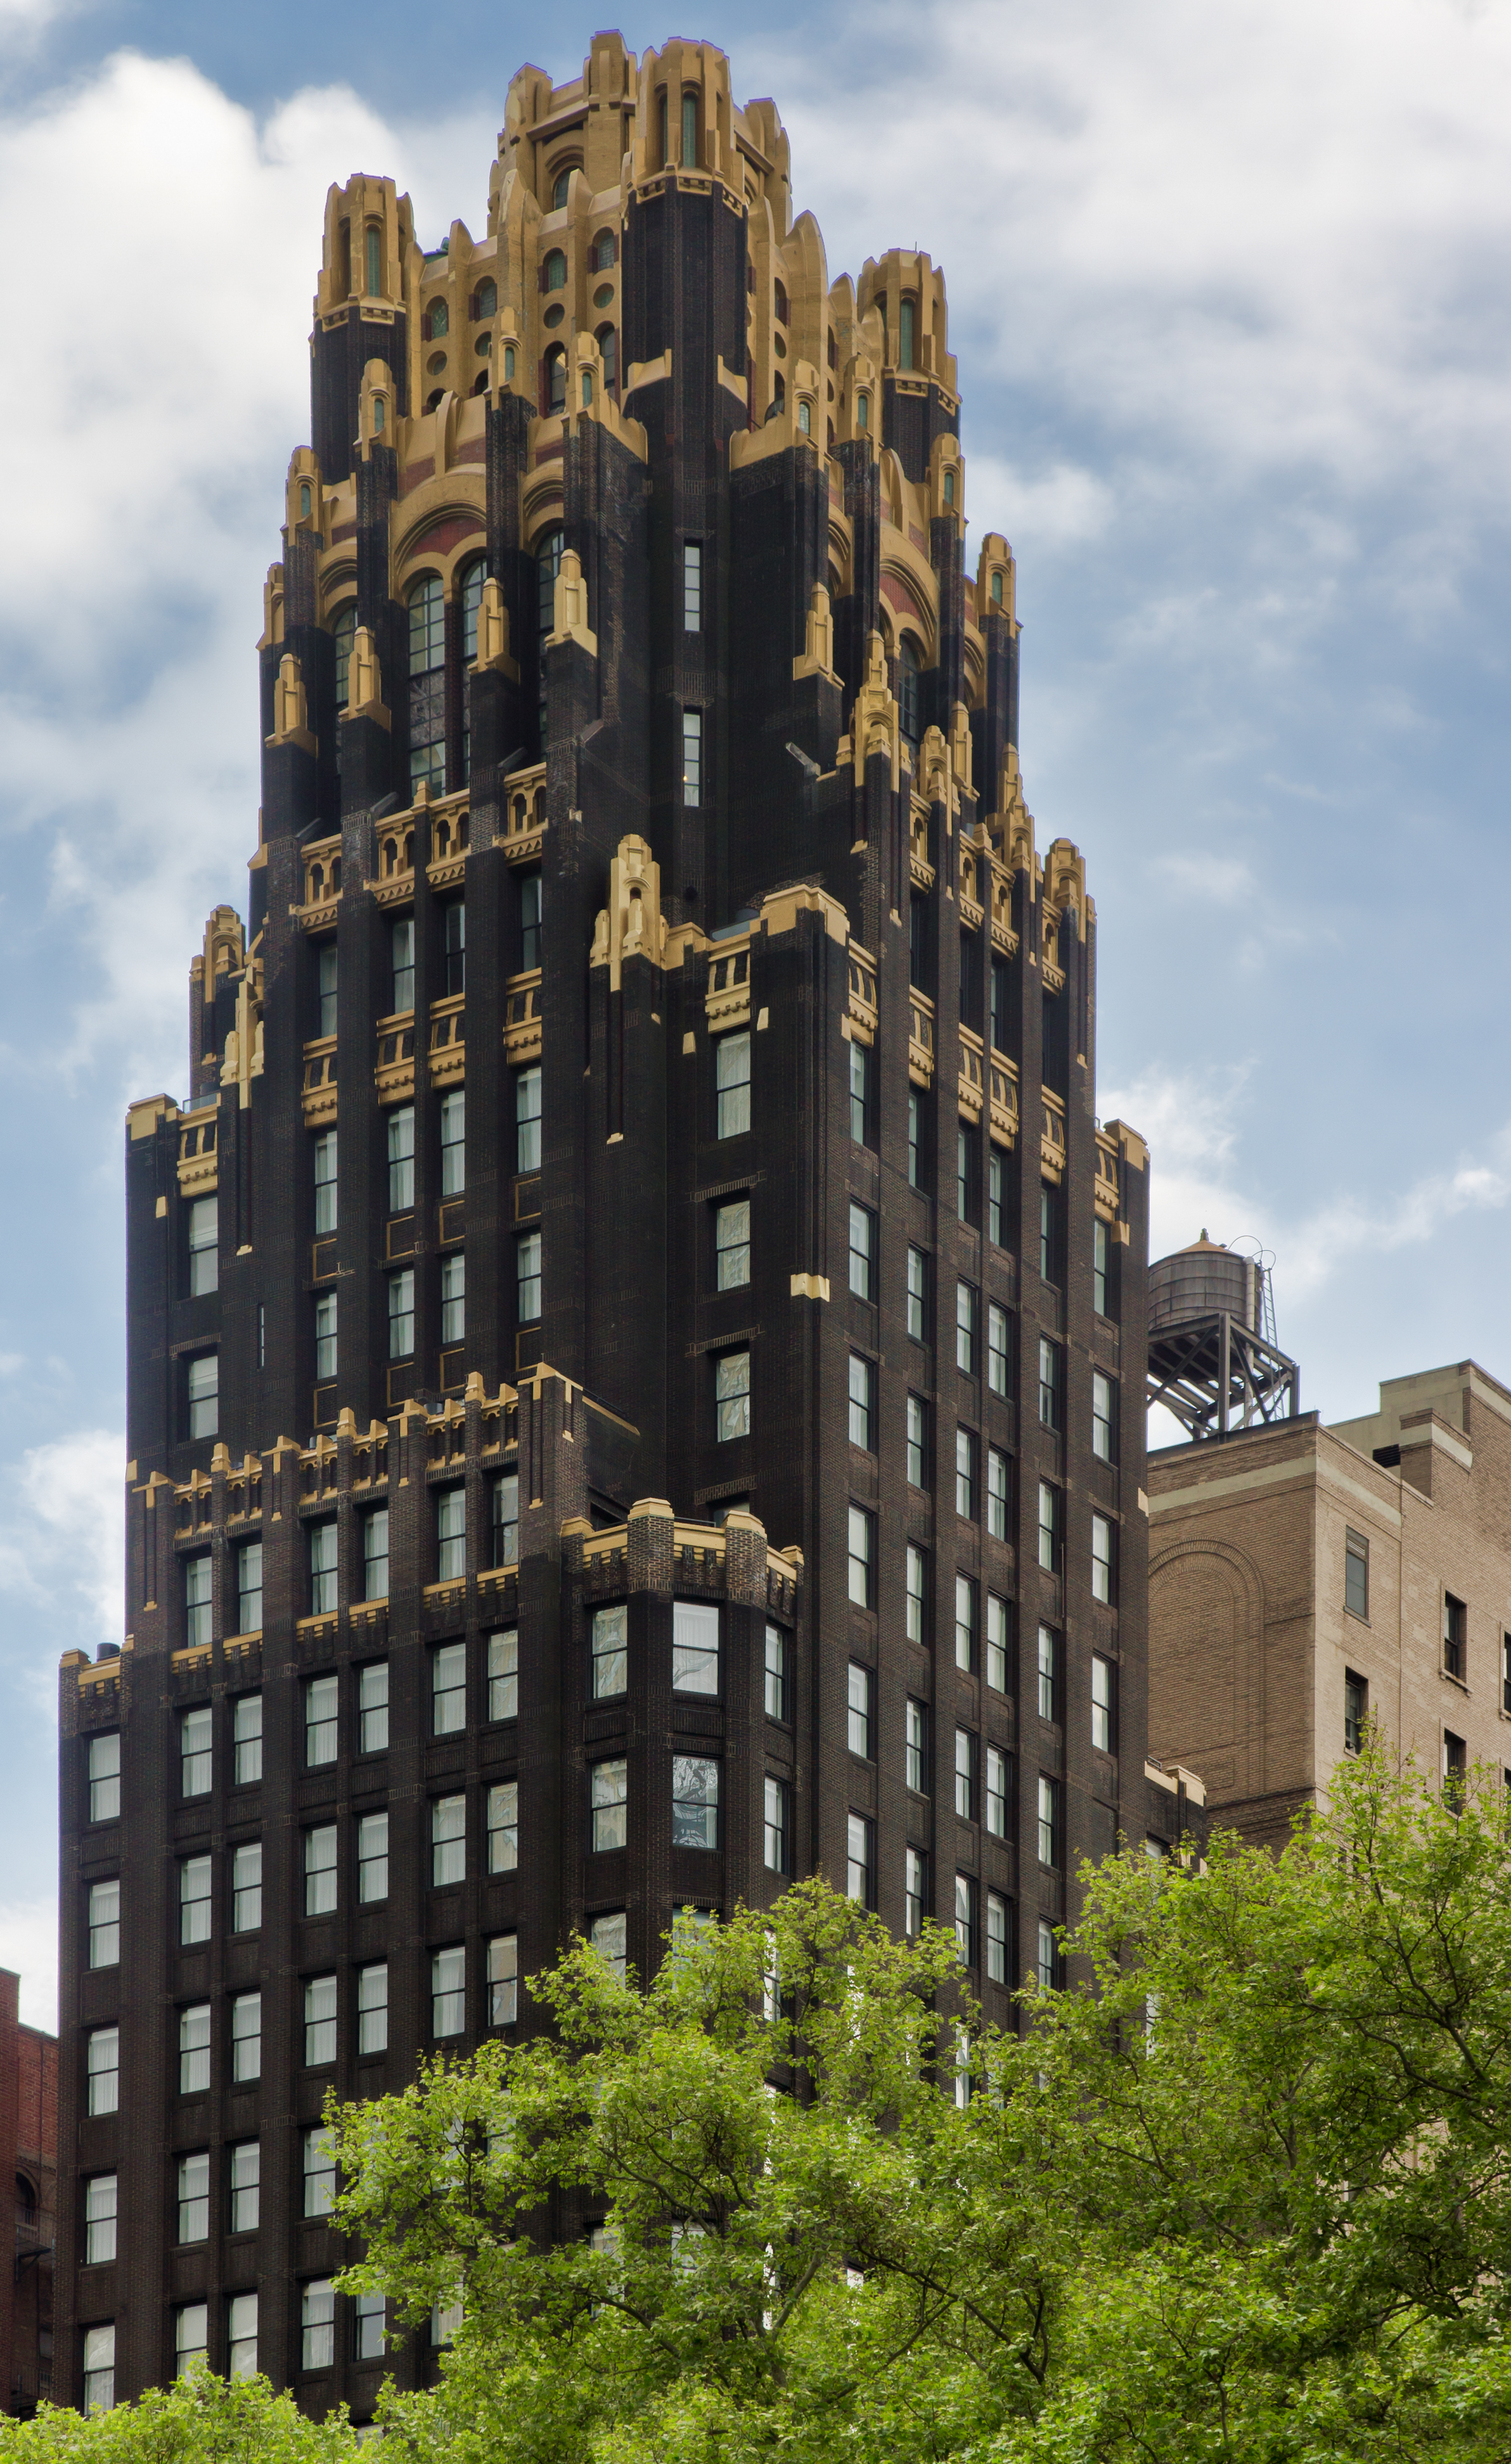 American Radiator Building Wikipedia,Tropical Most Beautiful Beaches In The World